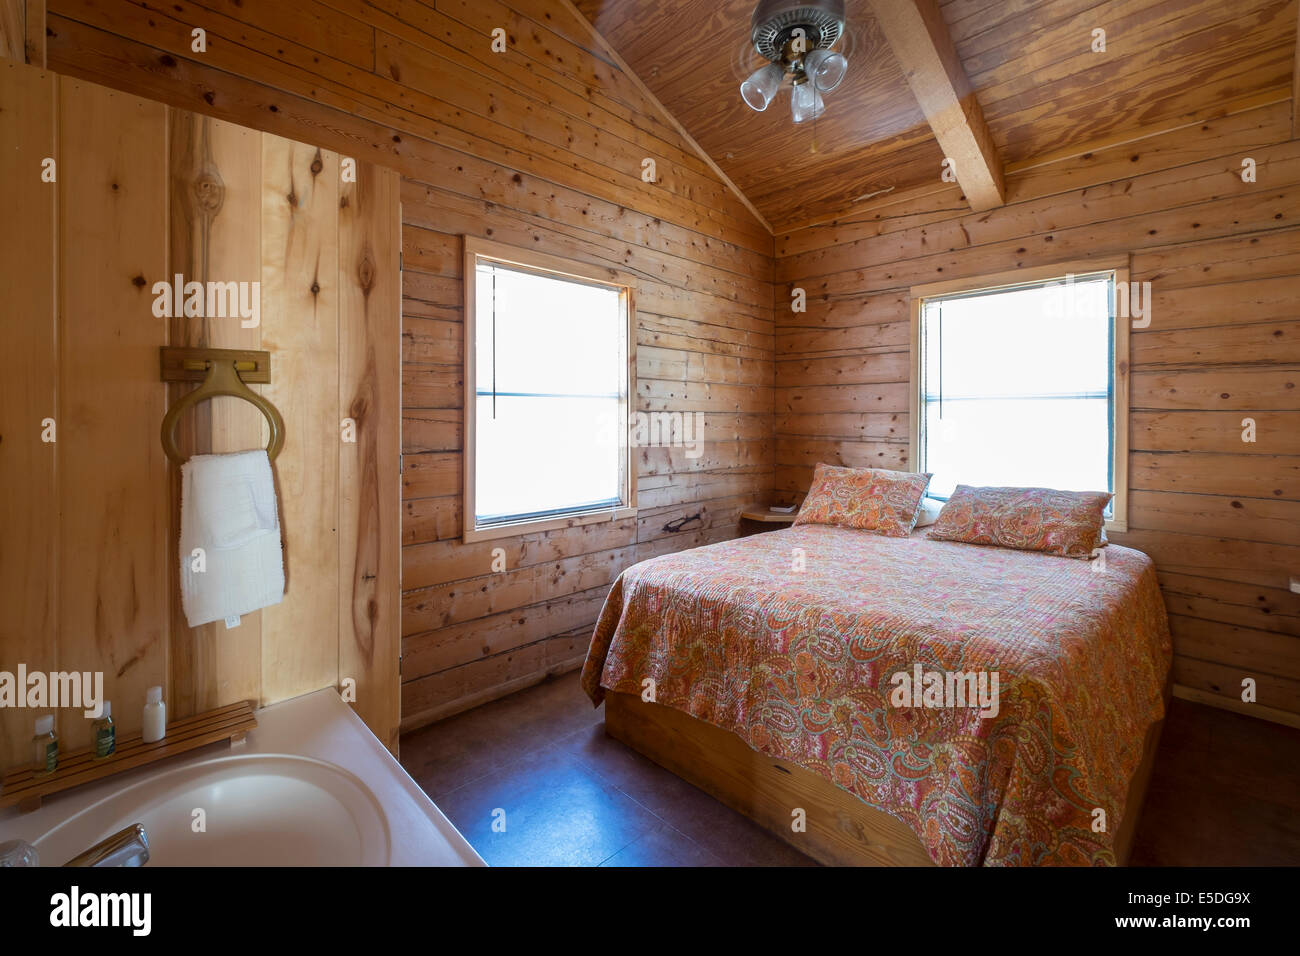 Usa Texas Bedroom With Bathroom Vanity In Log Home Stock Photo Alamy